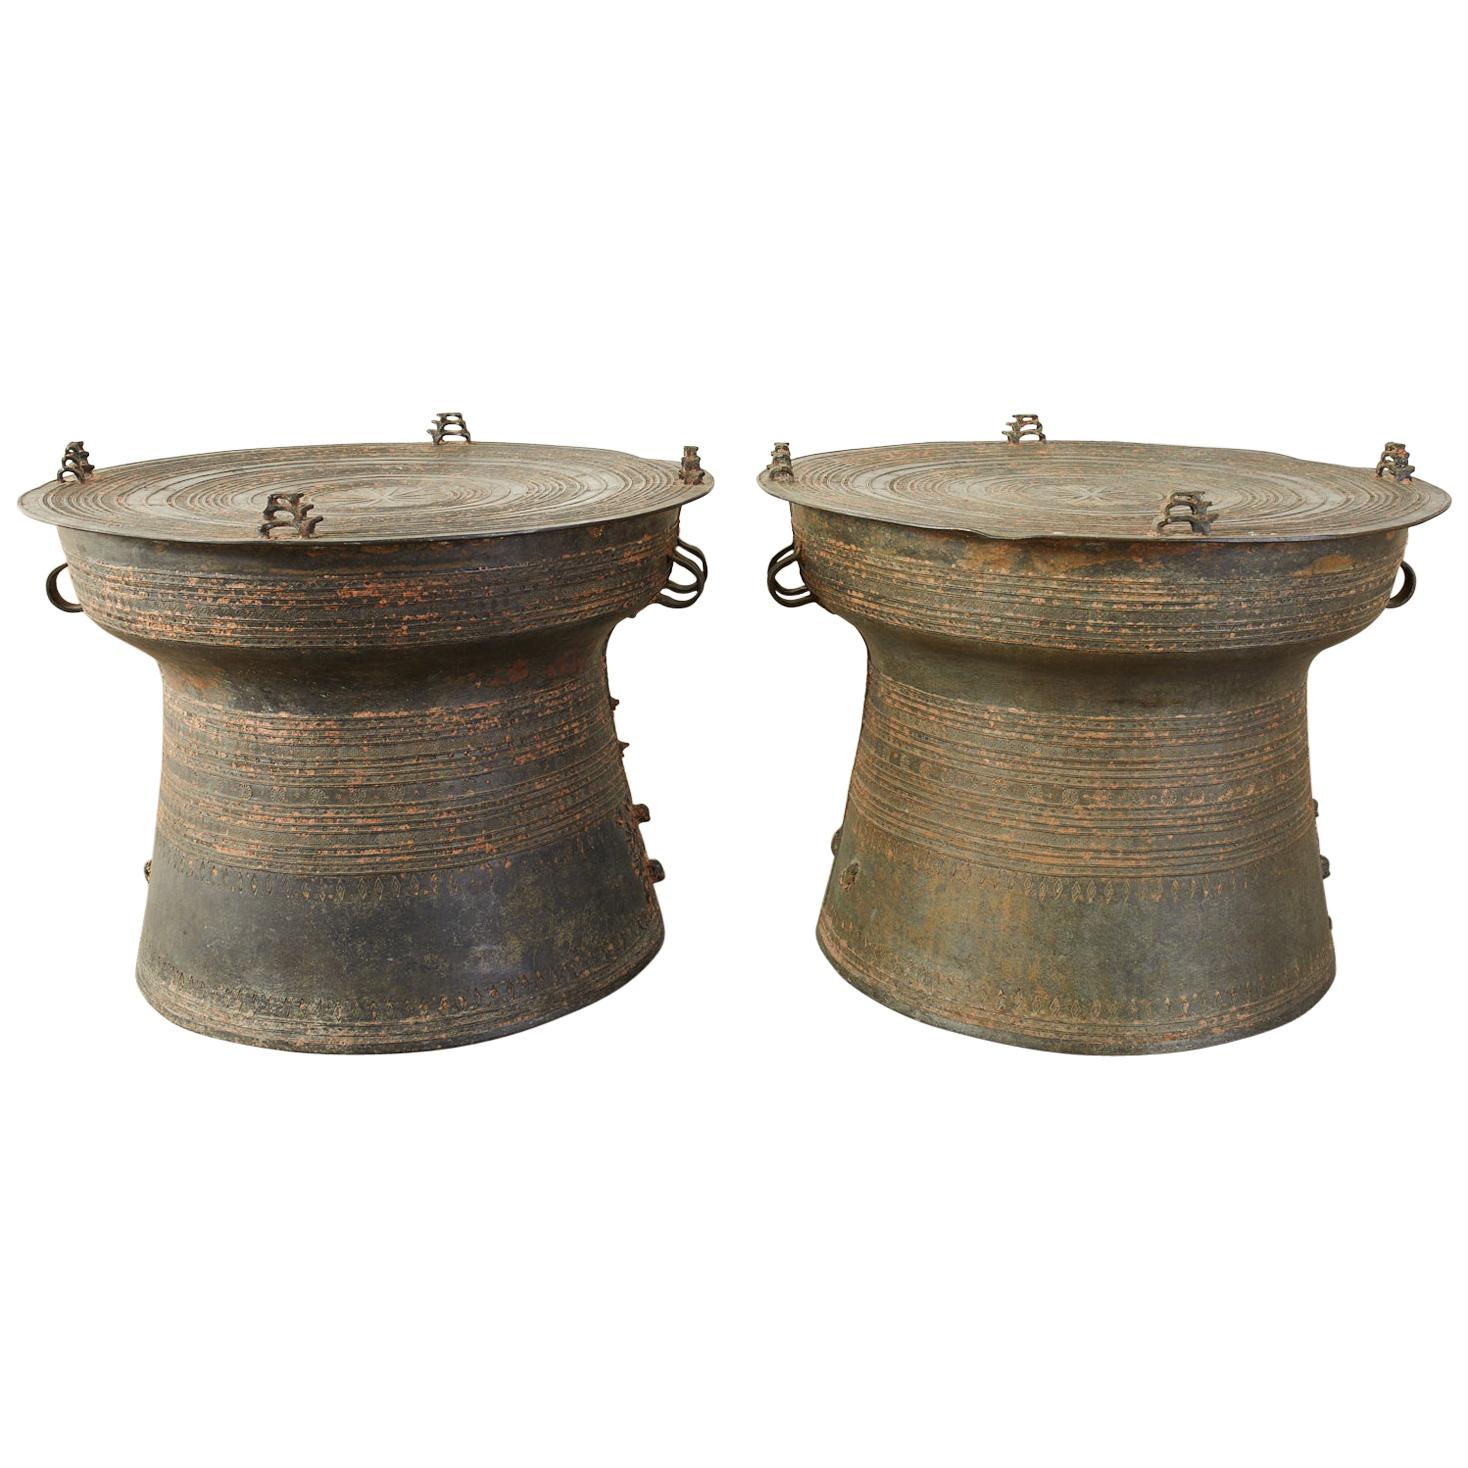 Pair of Burmese Bronze Rain Drums or Frog Drum Tables